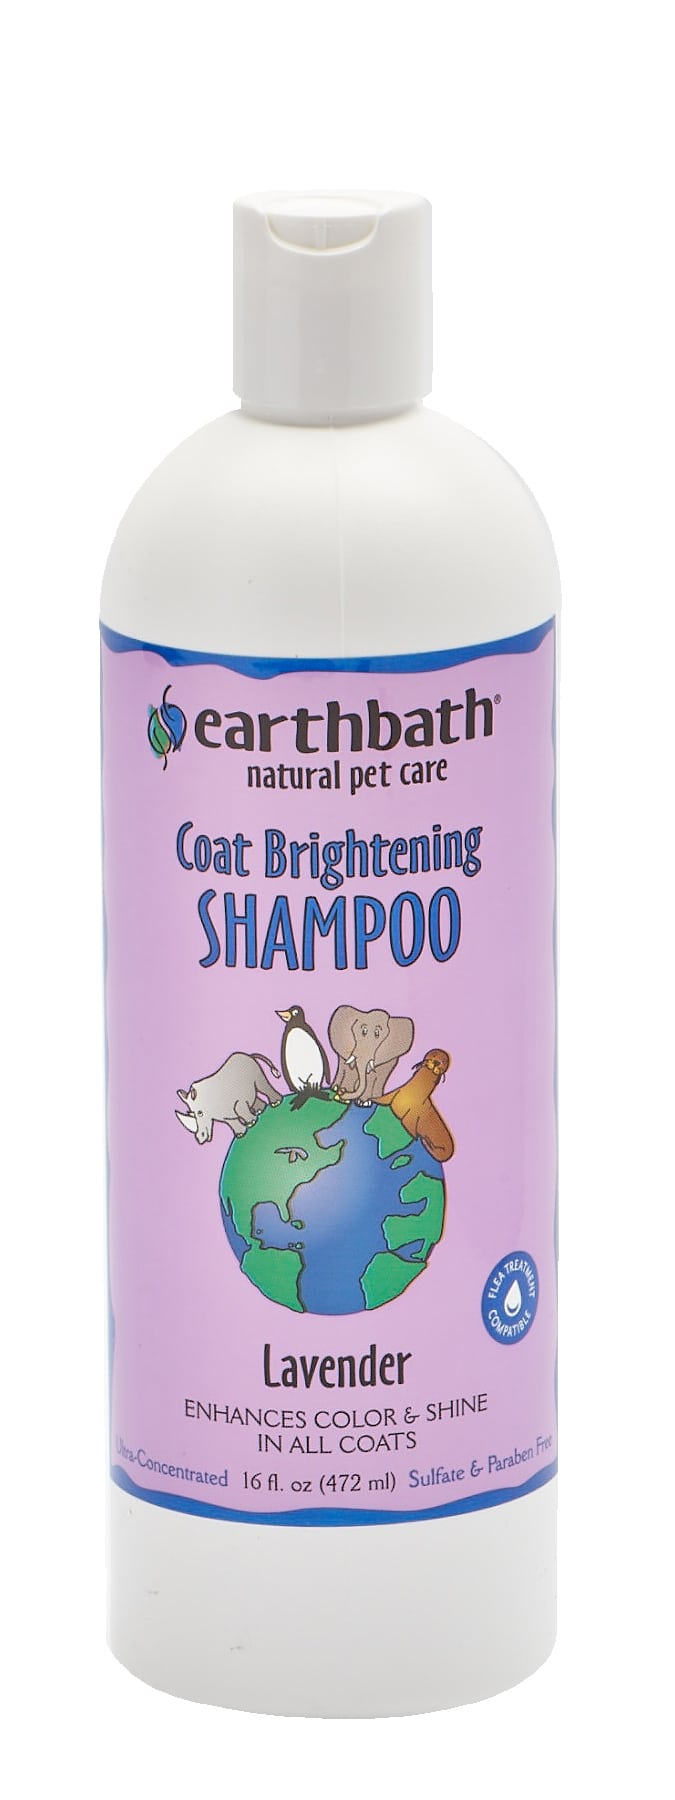 Earthbath Coat Brightening Shampoo for Dogs & Cats, Lavender, 16-oz Image